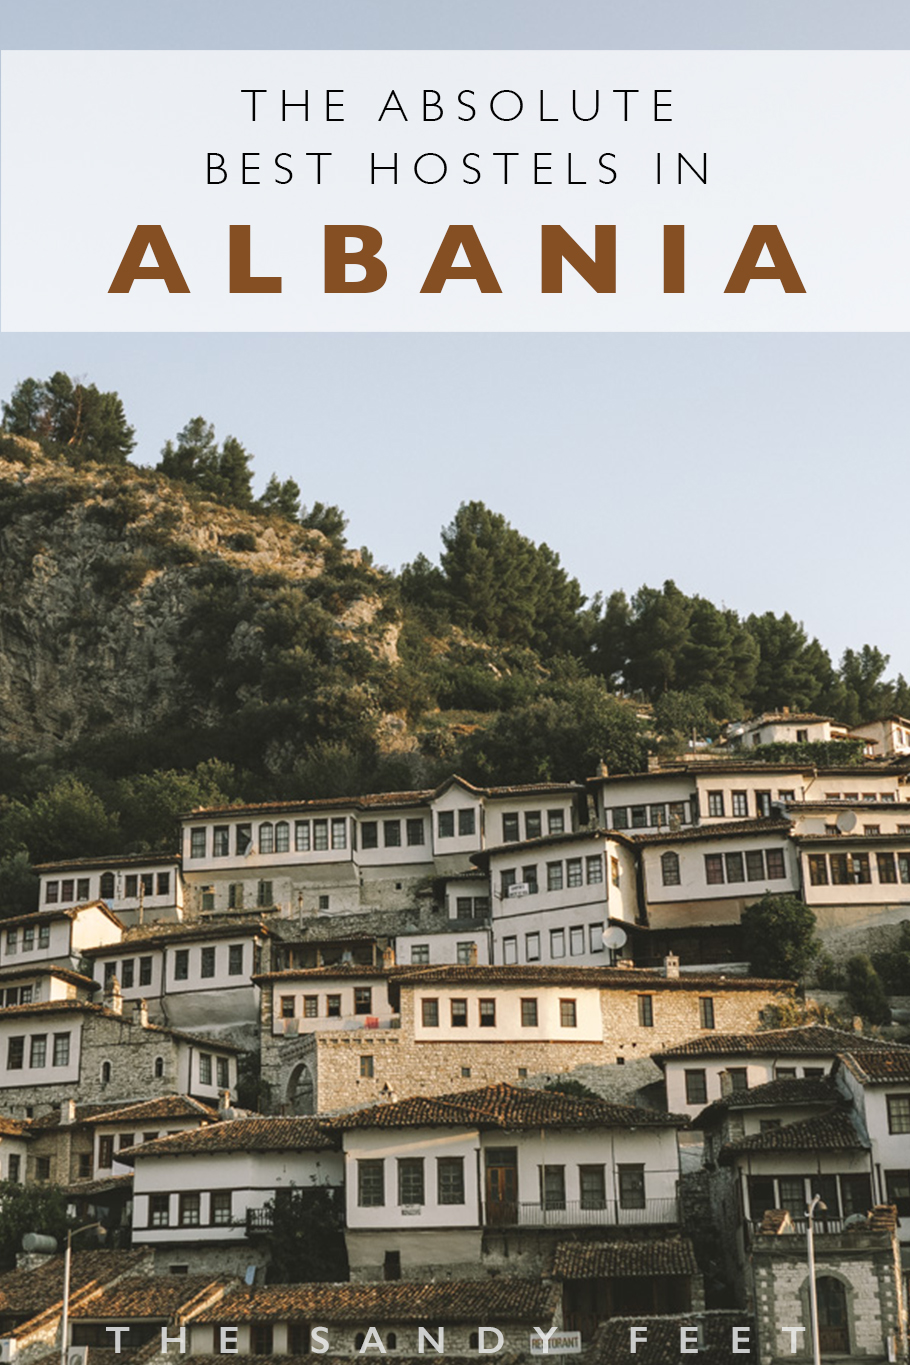 The Absolute Best Hostels In Albania, including my top budget accommodation picks in Tirana, Berat, Shkodra, Gjirokaster and Himara